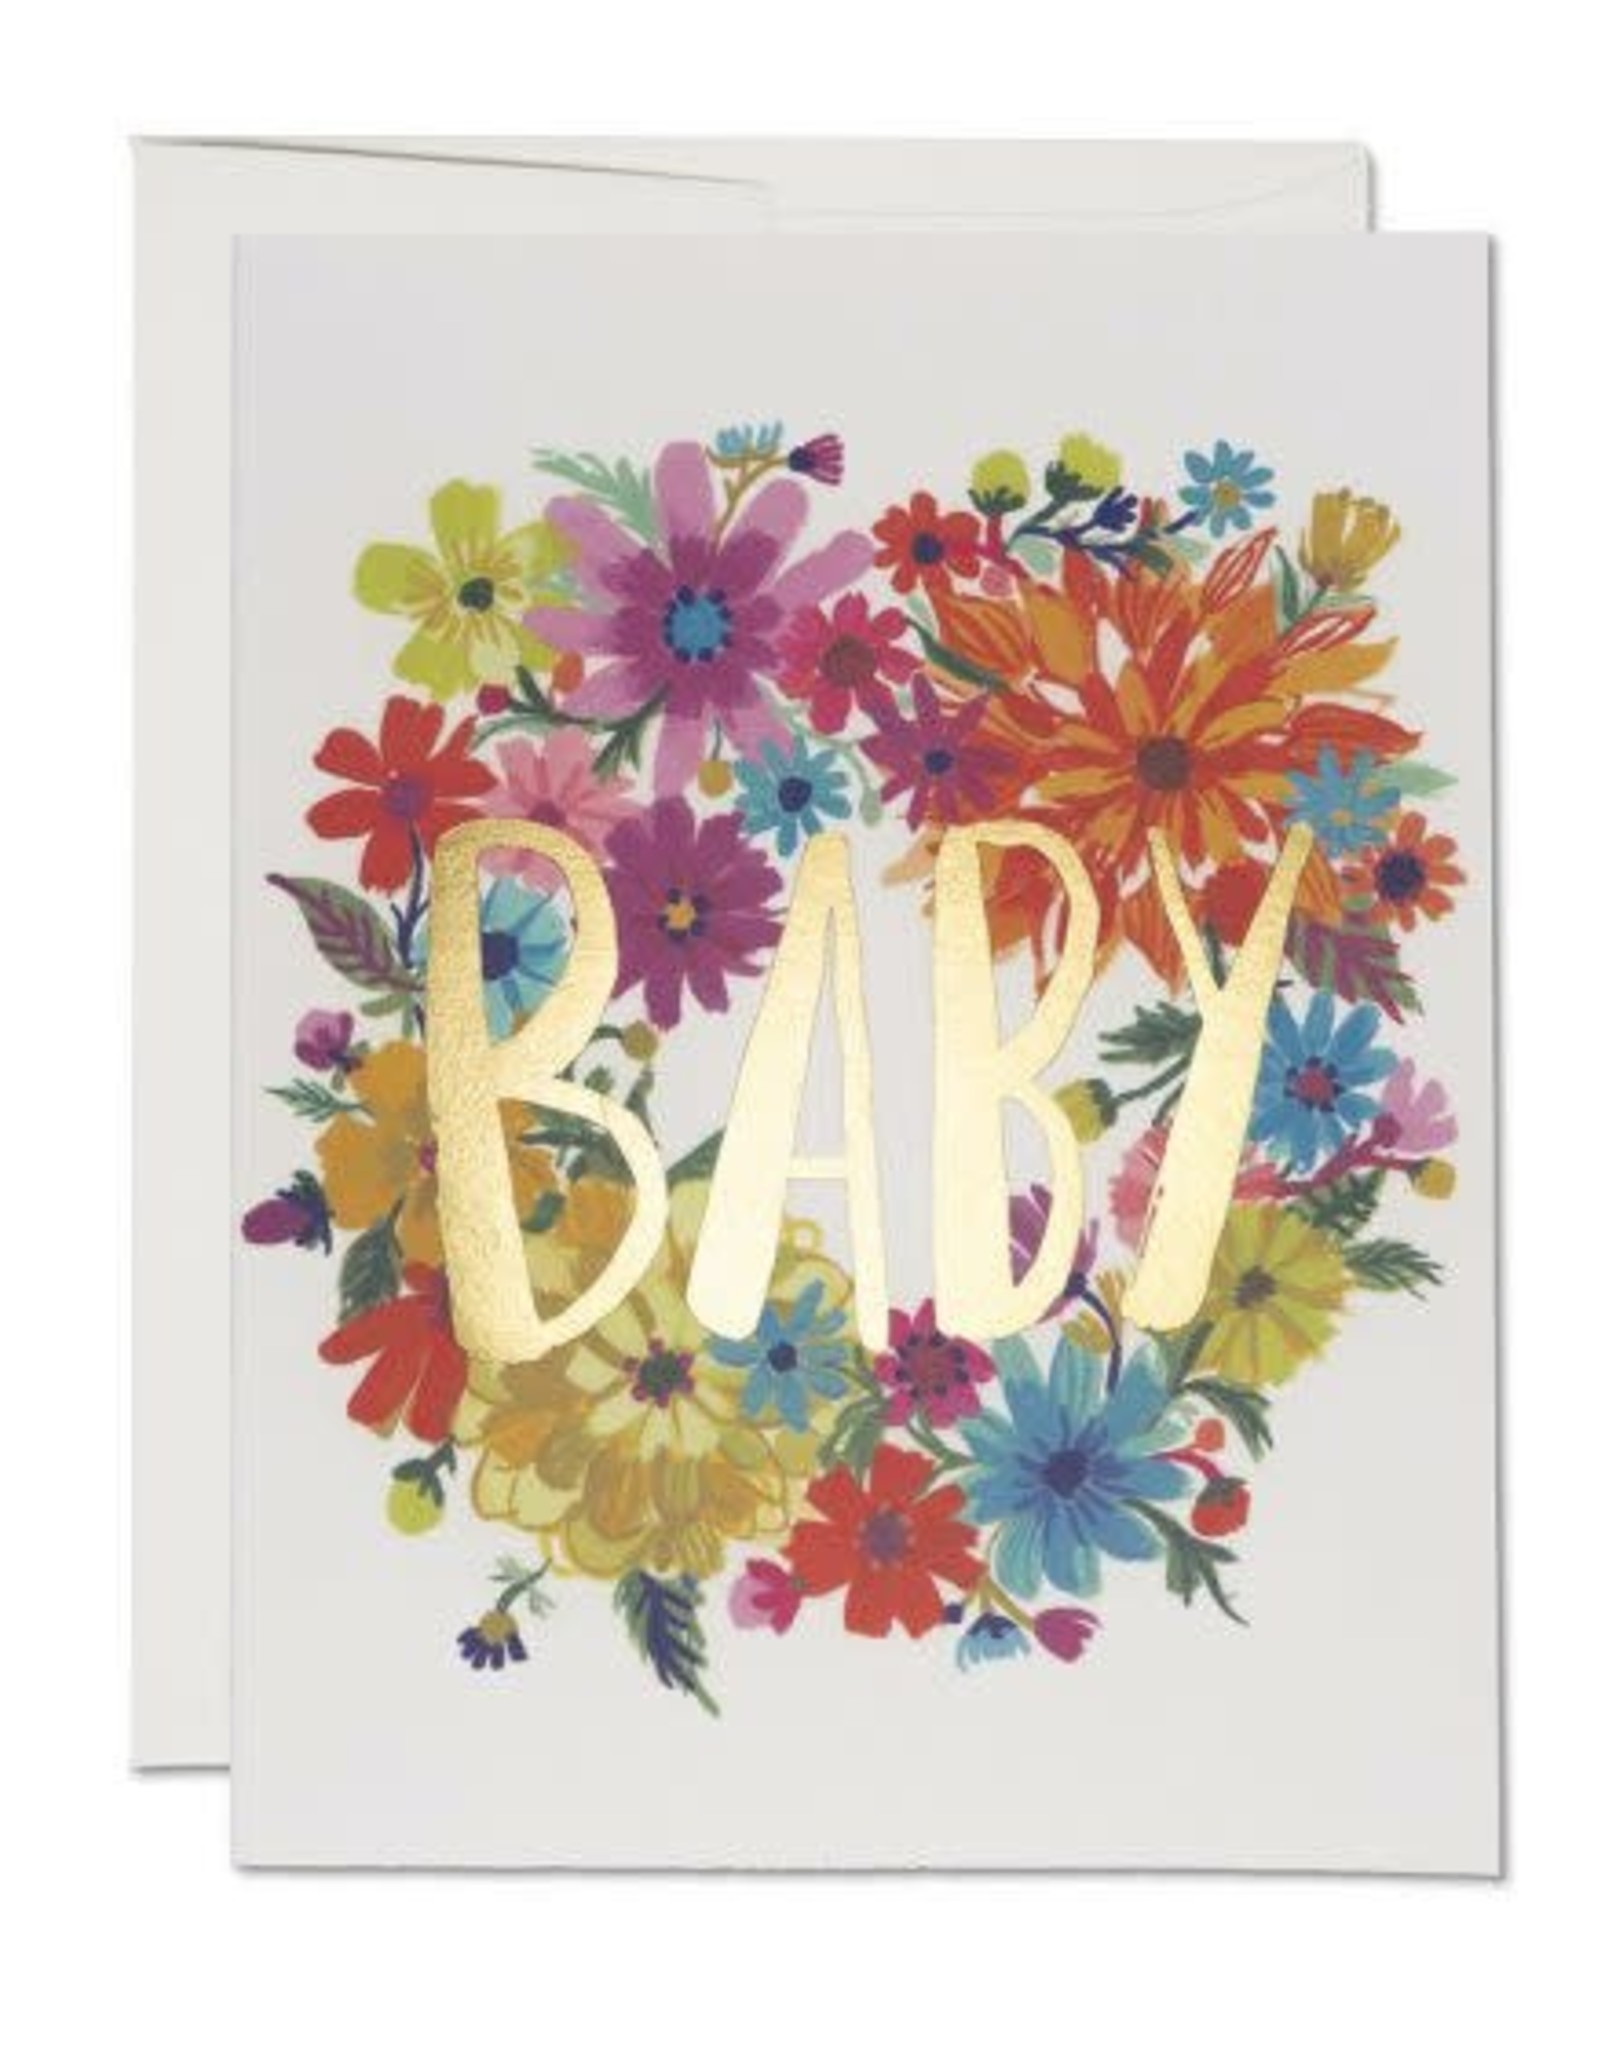 Baby Wreath Gold Foil Greeting Card